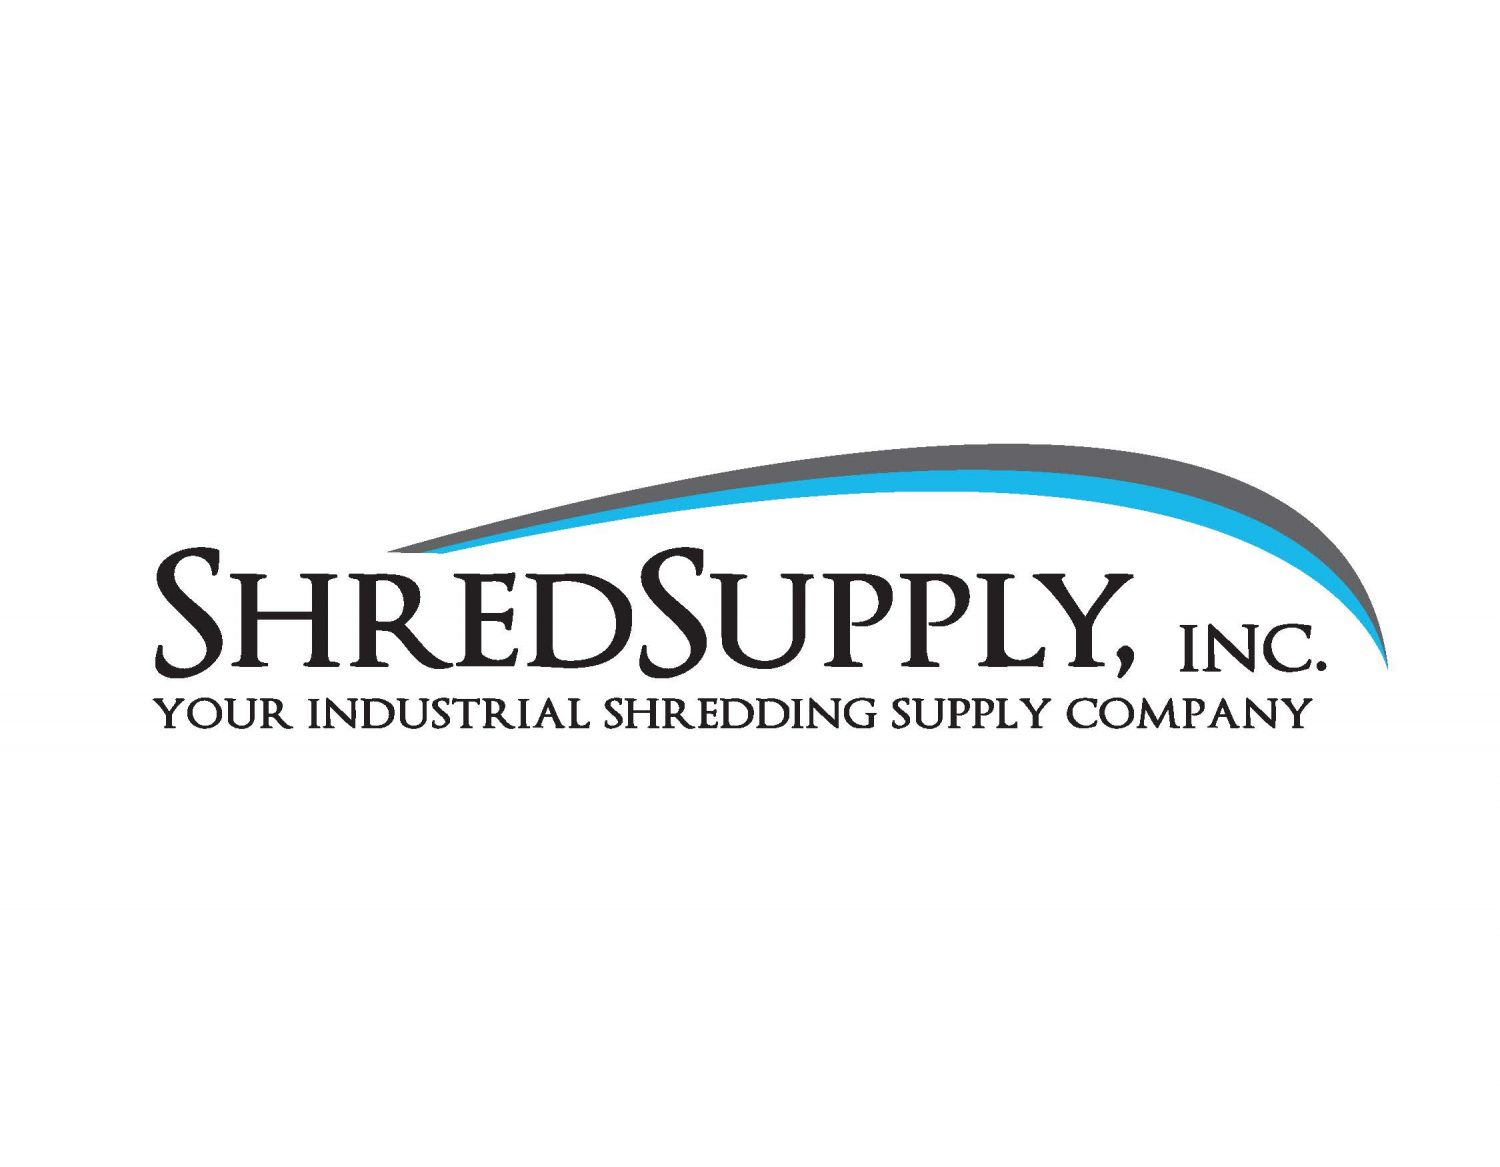 Orange County Business Tax Receipt Pdf Naid  Annual Conference And Expo Money Receipt Word Format Word with Rental Payment Receipt Template Shredfast Incshredsupply Inc  Booth  Shredfast Is Dedicated To  Providing Our Customers The Most Secure High Quality Best Performing  Technology  Generic Receipt Excel